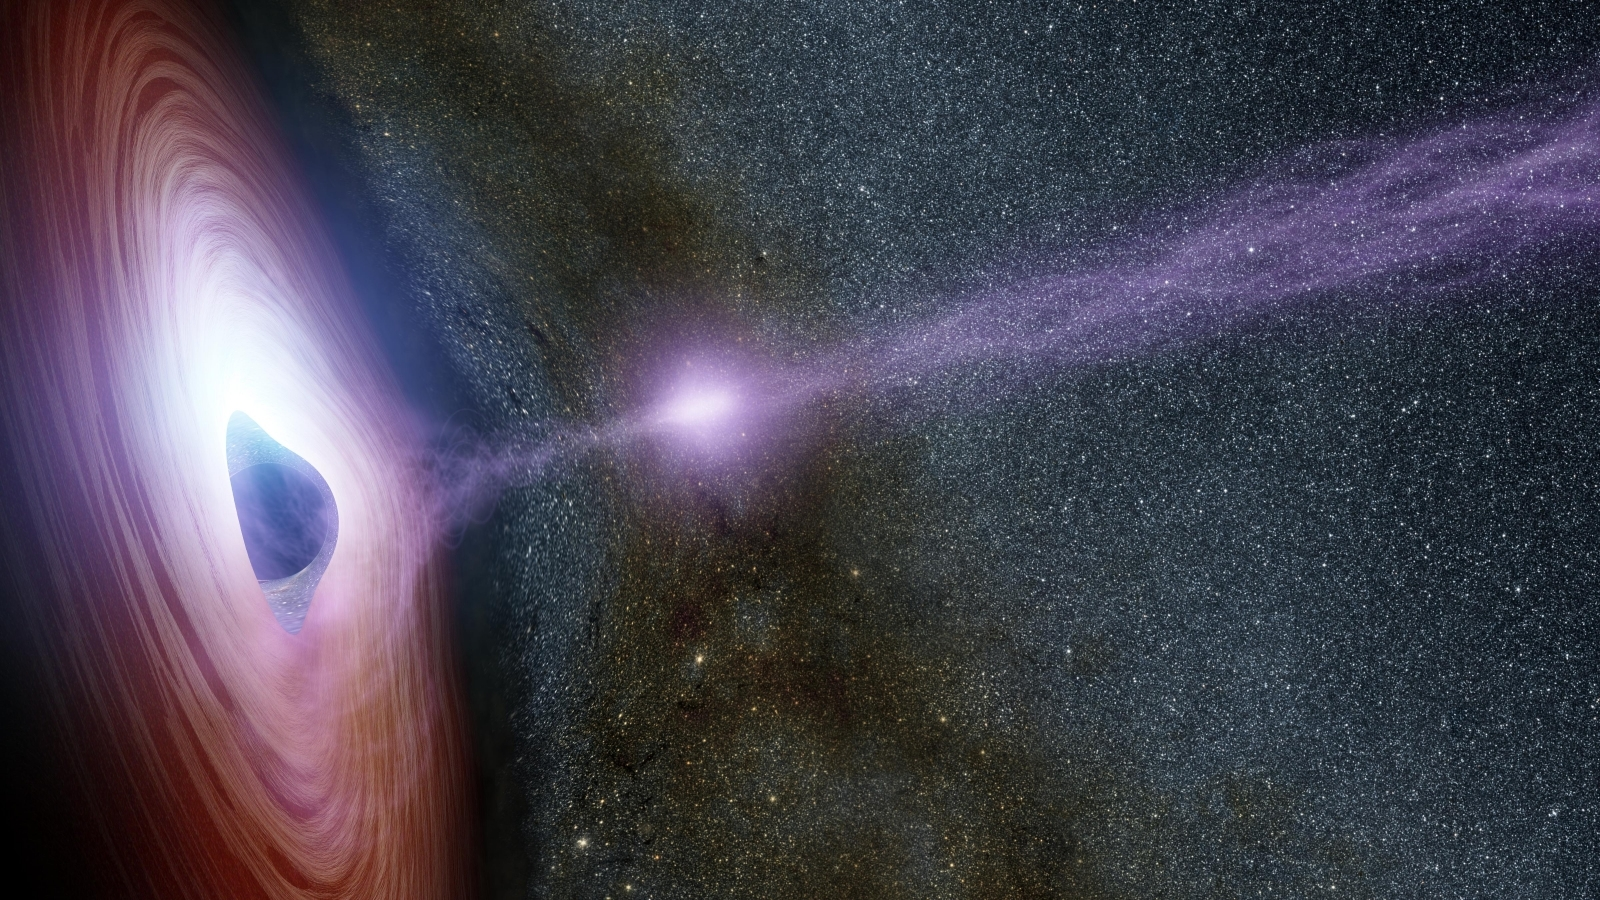 Supermassive Black Hole Discovered In The Milky Way